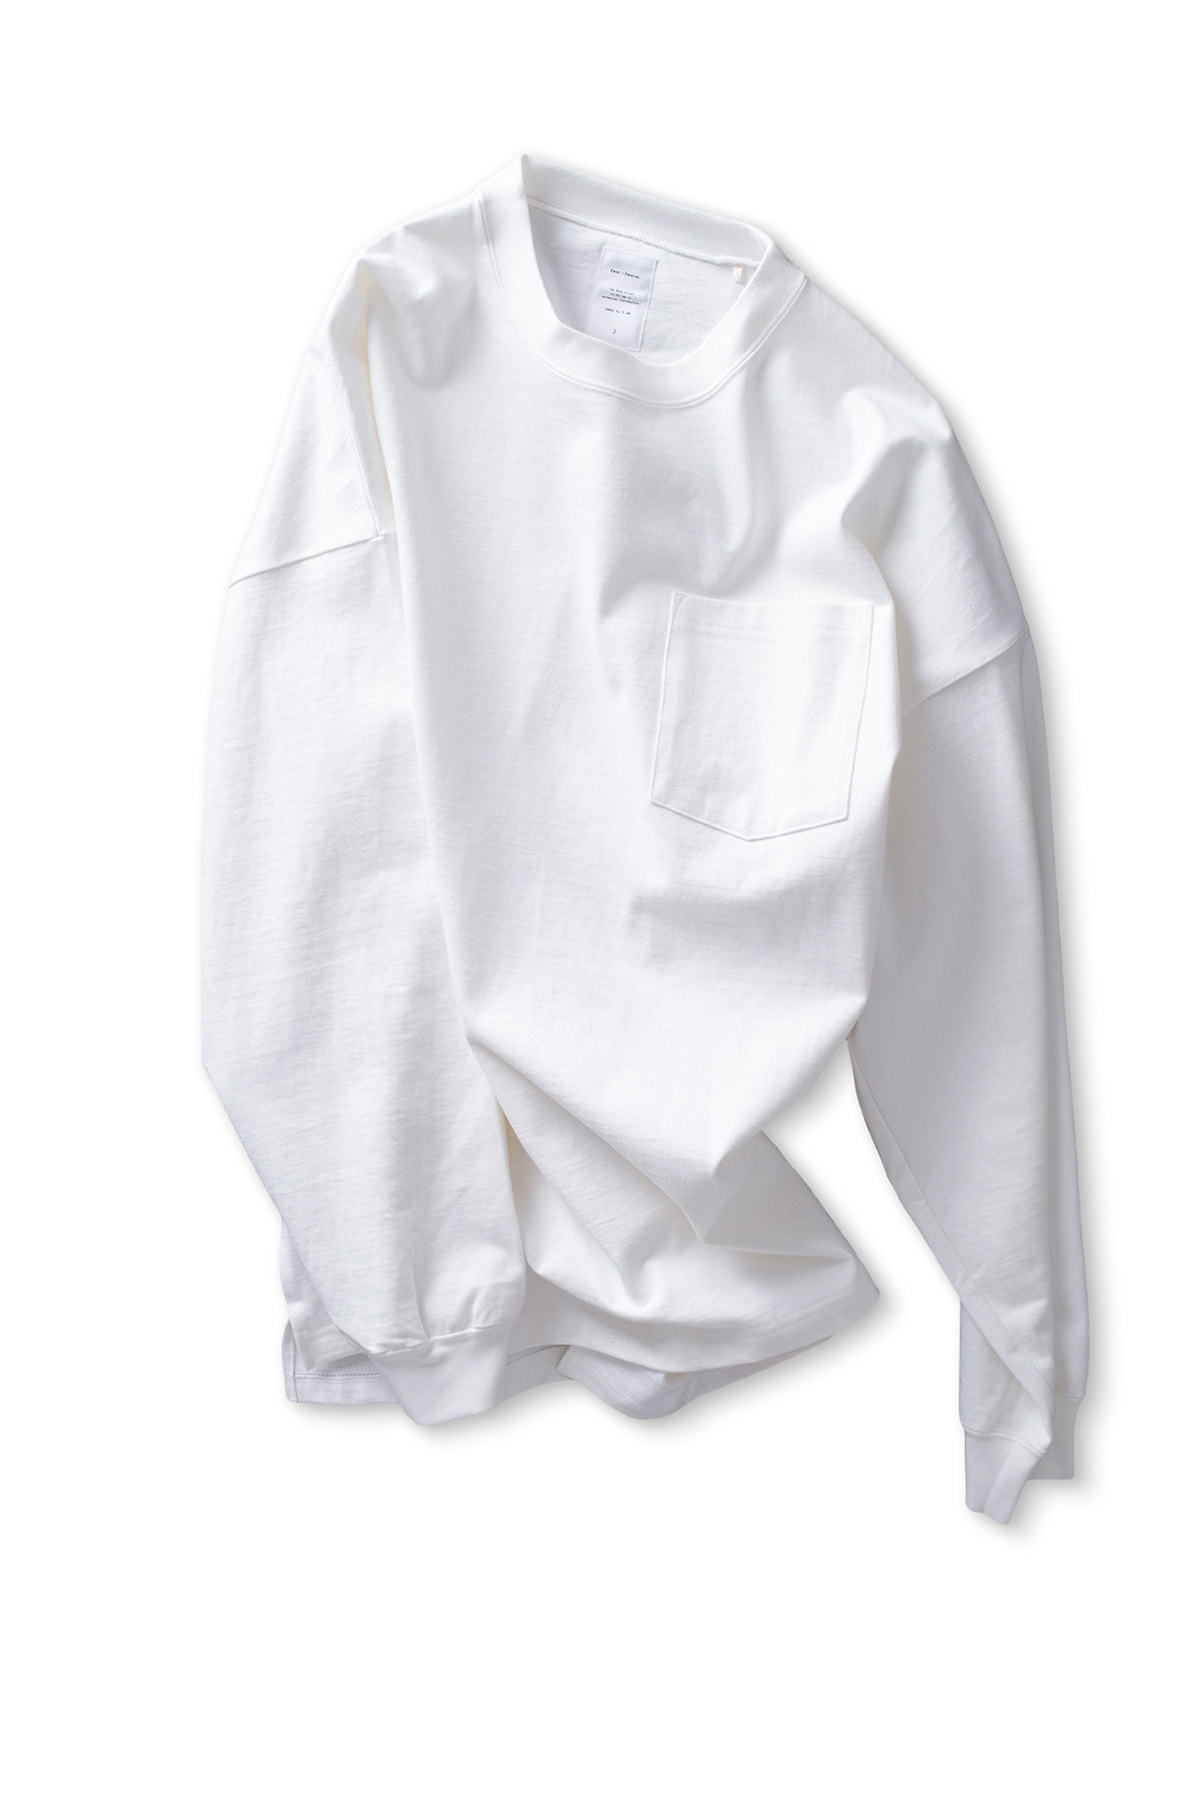 Name : Oversized L/S Pocket Tee (White)